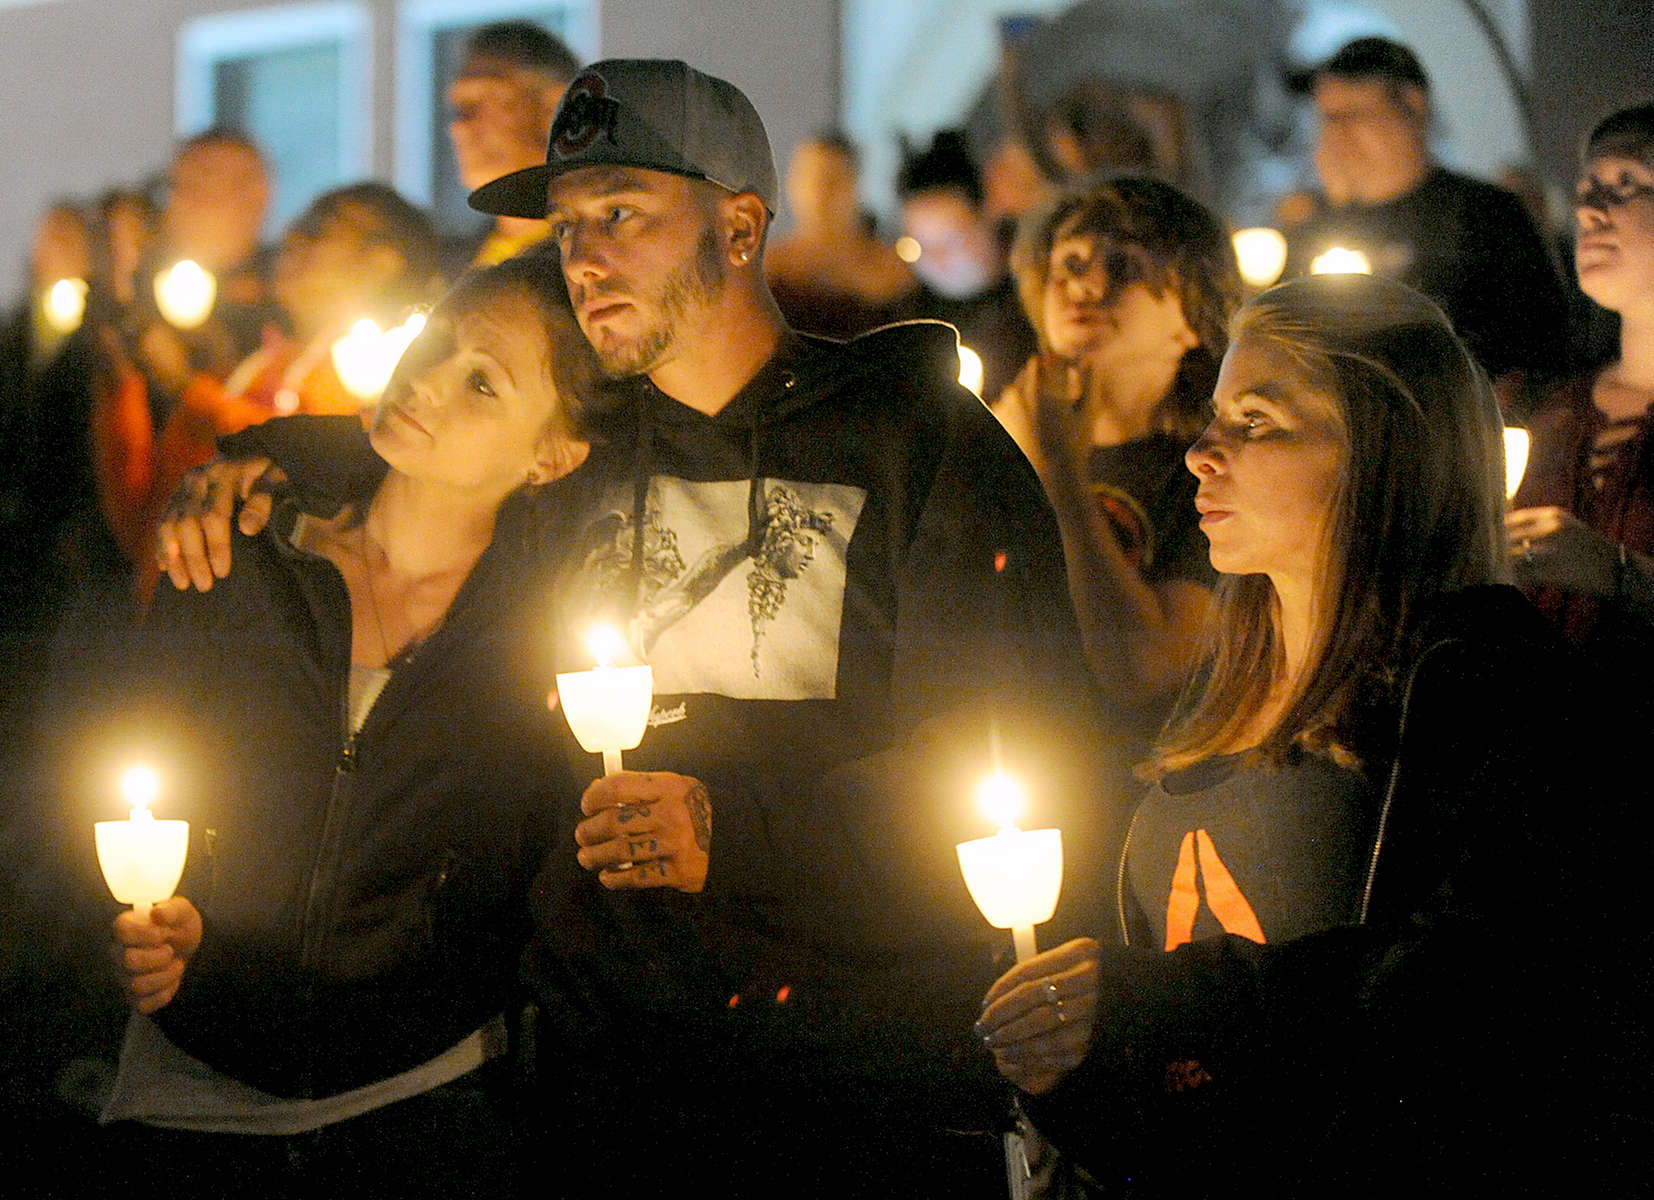 8/31/17-- MARLBOROUGH-- At the candlelight vigil for Opiod Awareness Day in front of the Walker Building Thursday night, from left: Shawna Simpson of Marlborough; Adam Schofield, of Marlborough; and Karen Cannistraro, of Hudson. [Daily News and Wicked Local Staff Photo/Art Illman]